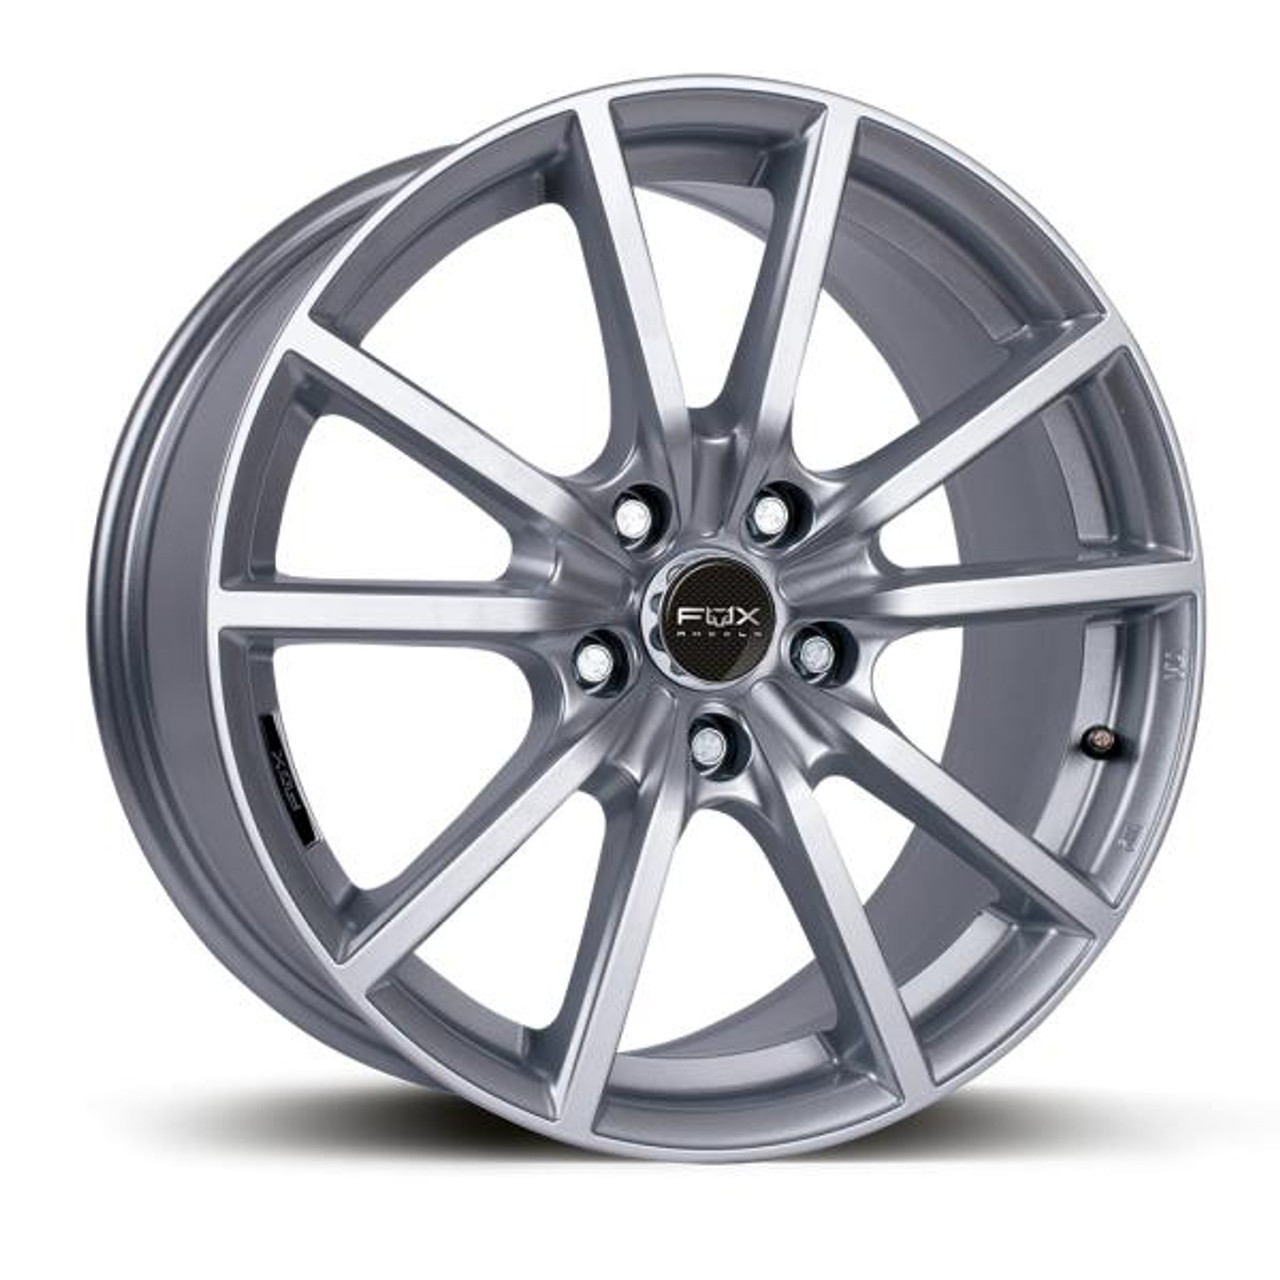 FOX FX1 Alloy Wheels Silver